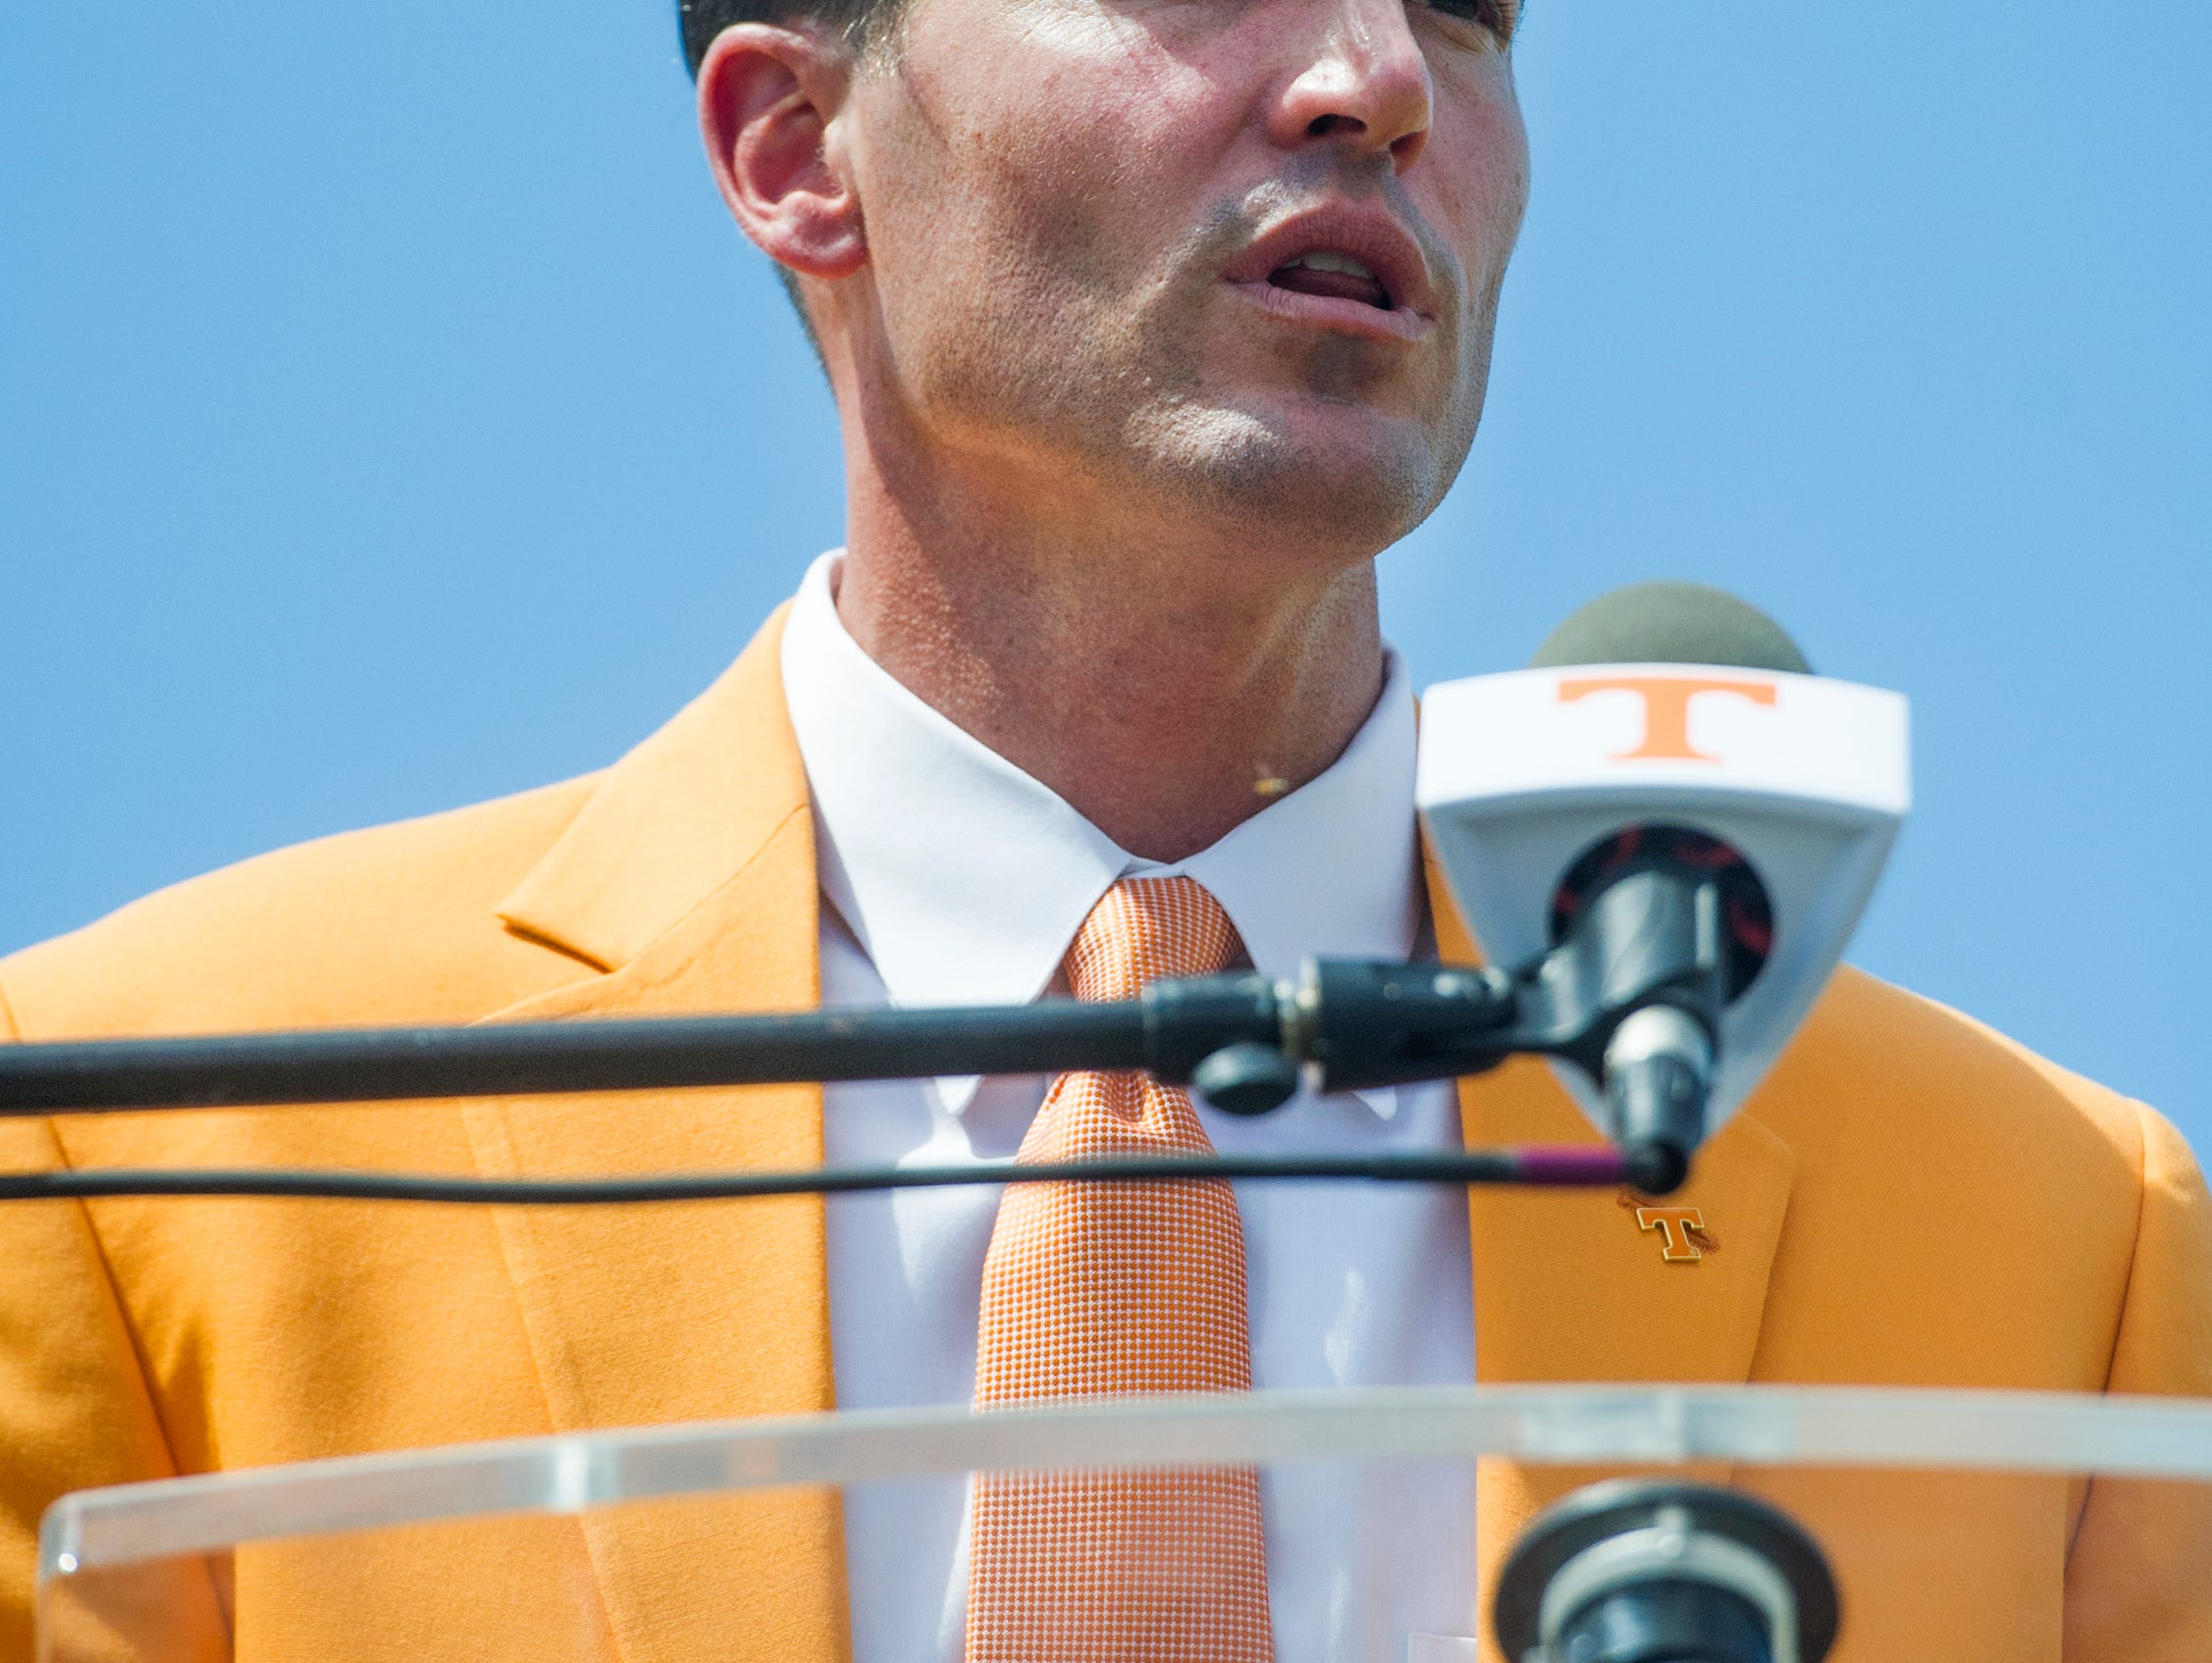 Tony Vitello, the new University of Tennessee baseball head coach, speaks at a press conference where he is introduced to the media for the first time at Lindsey Nelson Stadium on Friday June 9, 2017.